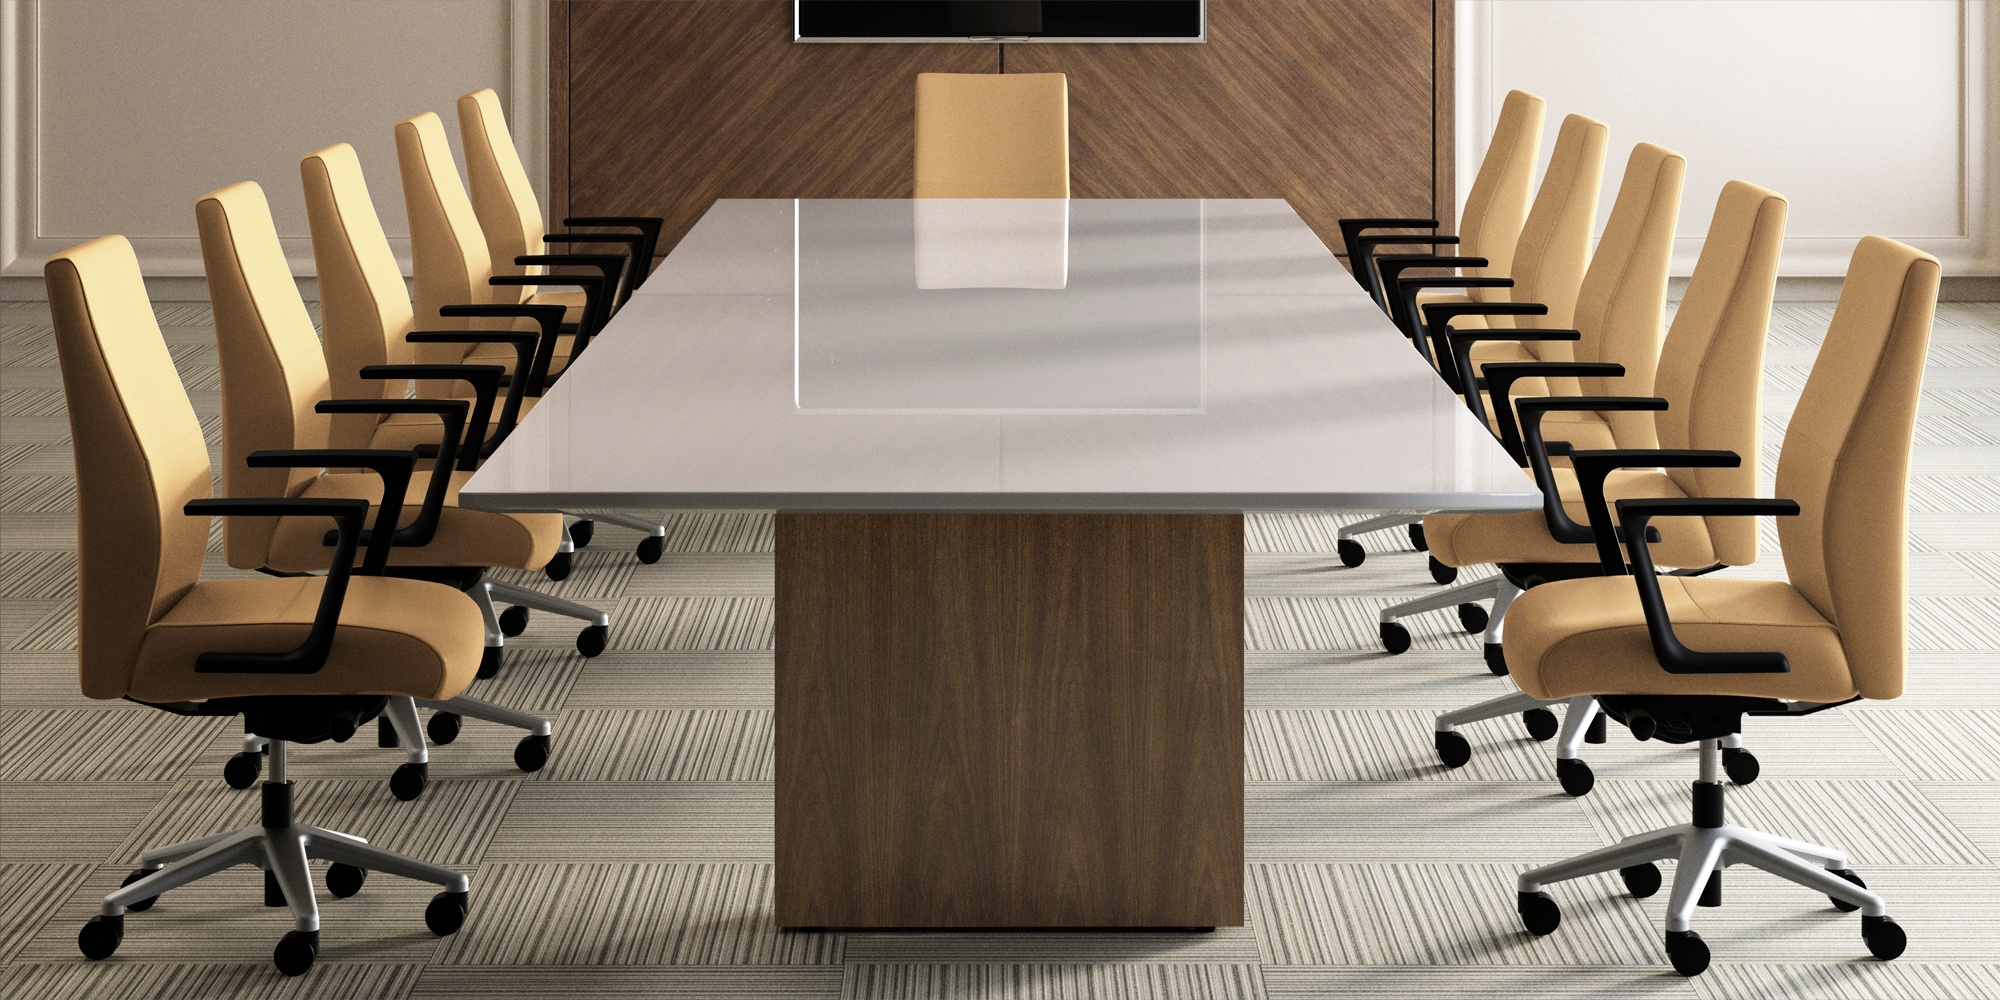 SitOnIt Seating is available for your Executive Conference Room  or Board Room. Learn about our chair demo program.